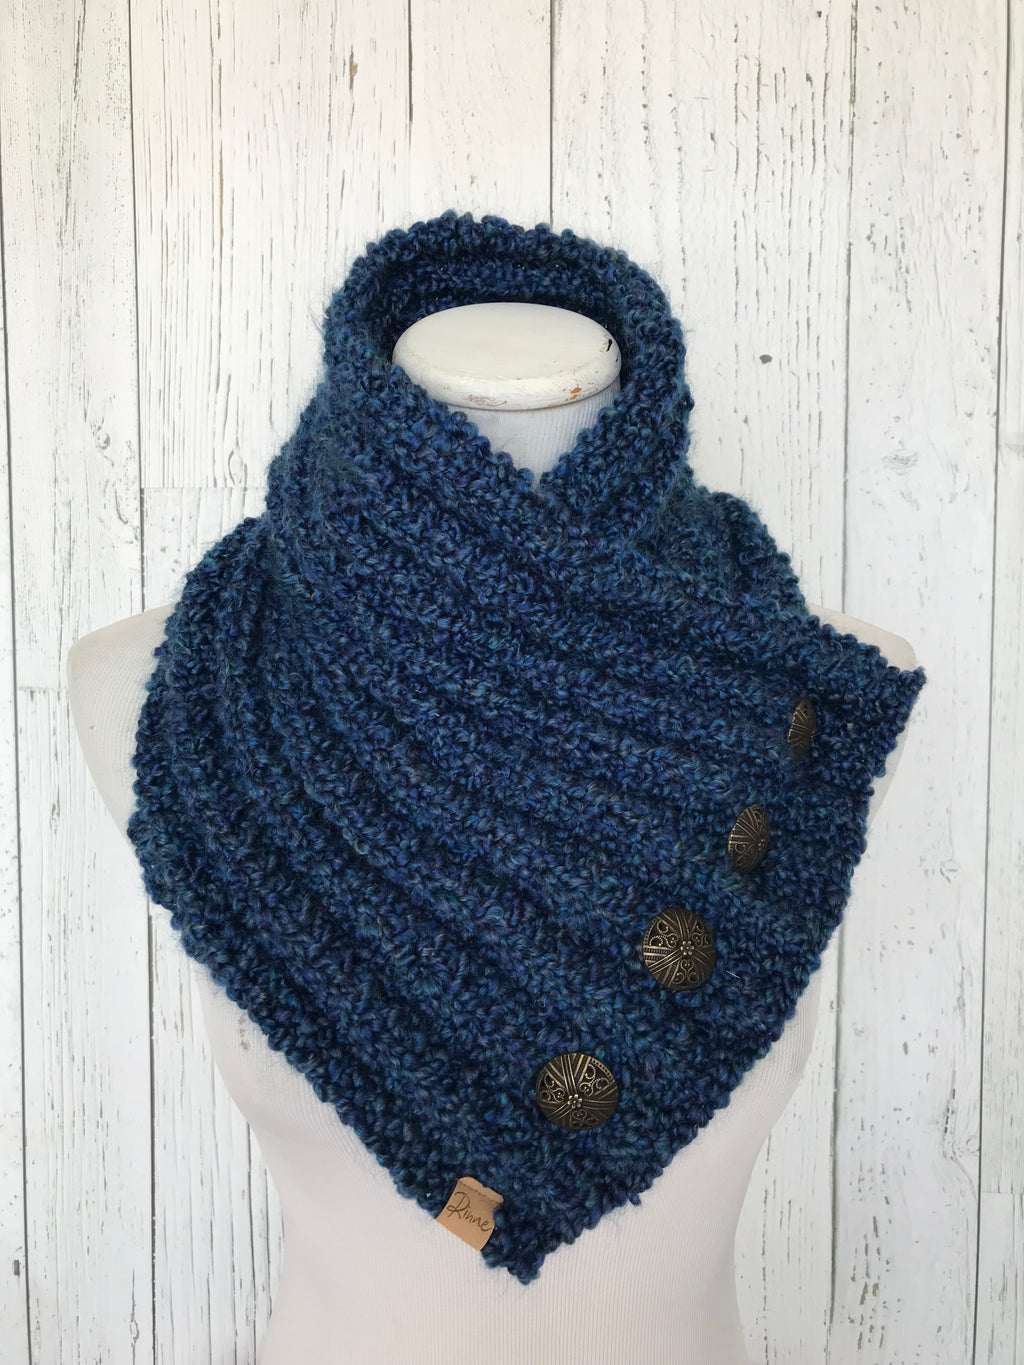 Classic Knit Button Cowl in colonial heathered blue with bronze buttons